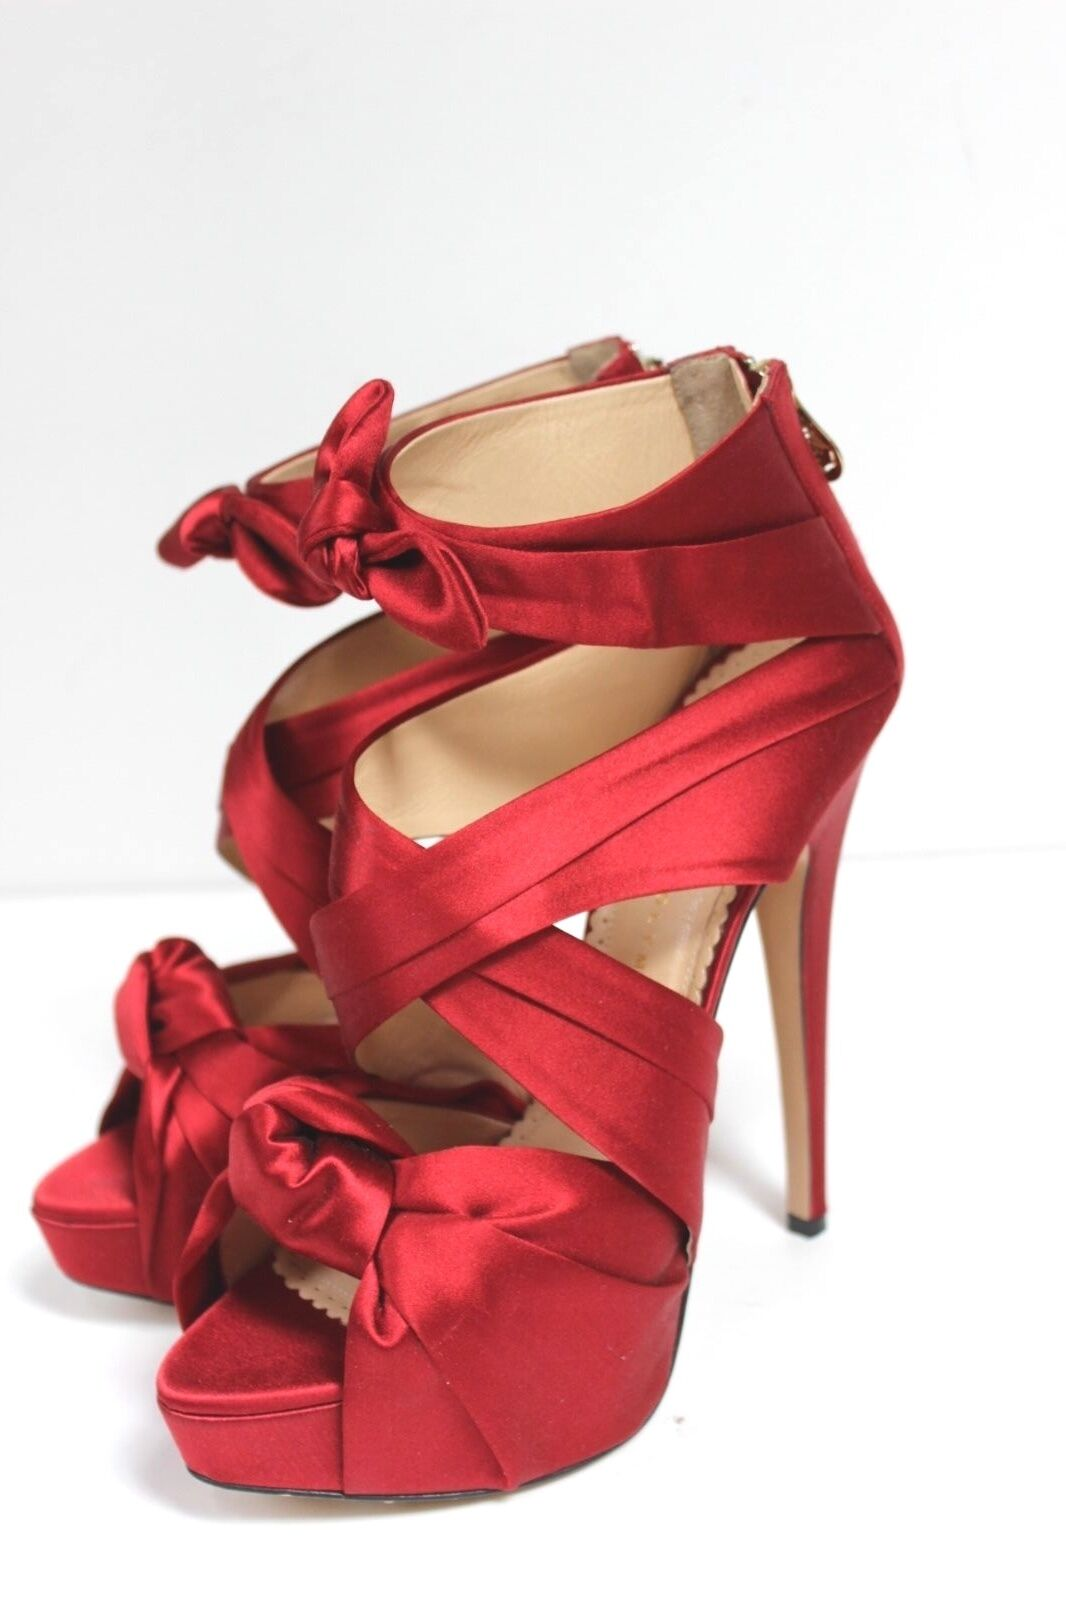 CHARLOTTE OLYMPIA Sandals  'Andrea' Red Satin Sandals OLYMPIA 39 UK 6 535bed